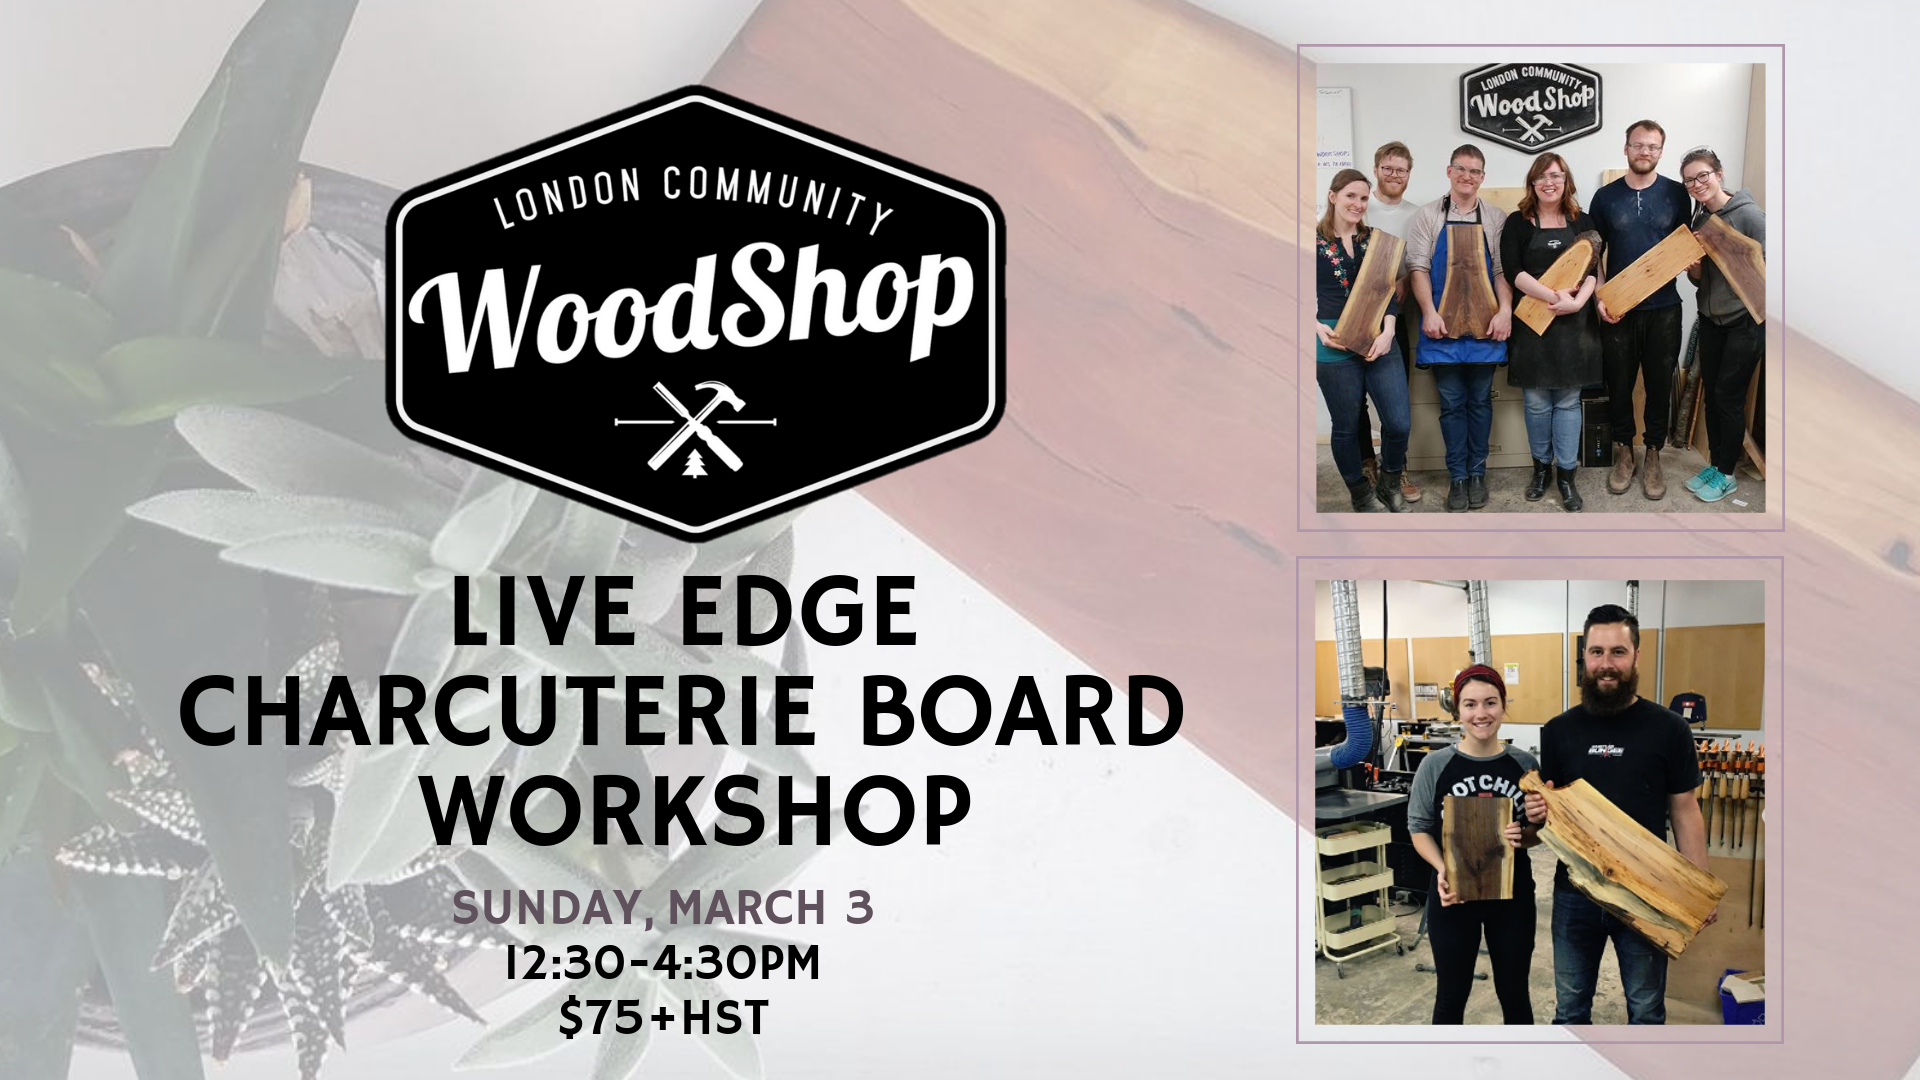 March 3 Workshop - Charcuterie Board